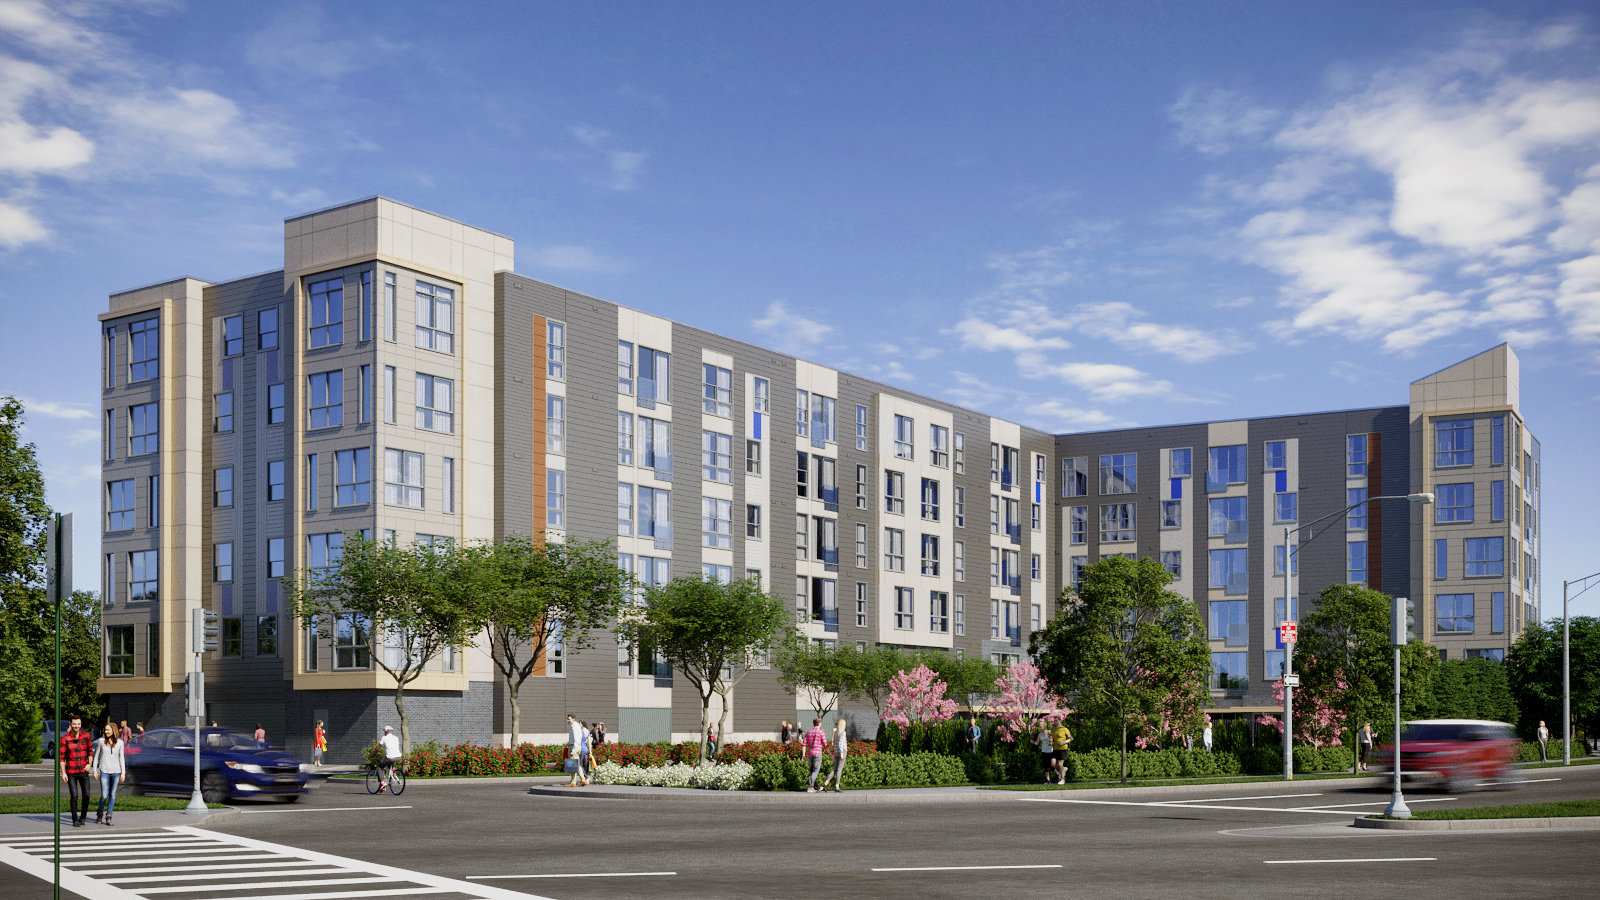 One beachmont 205 revere beach parkway apartments gate residential development callahan construction managers